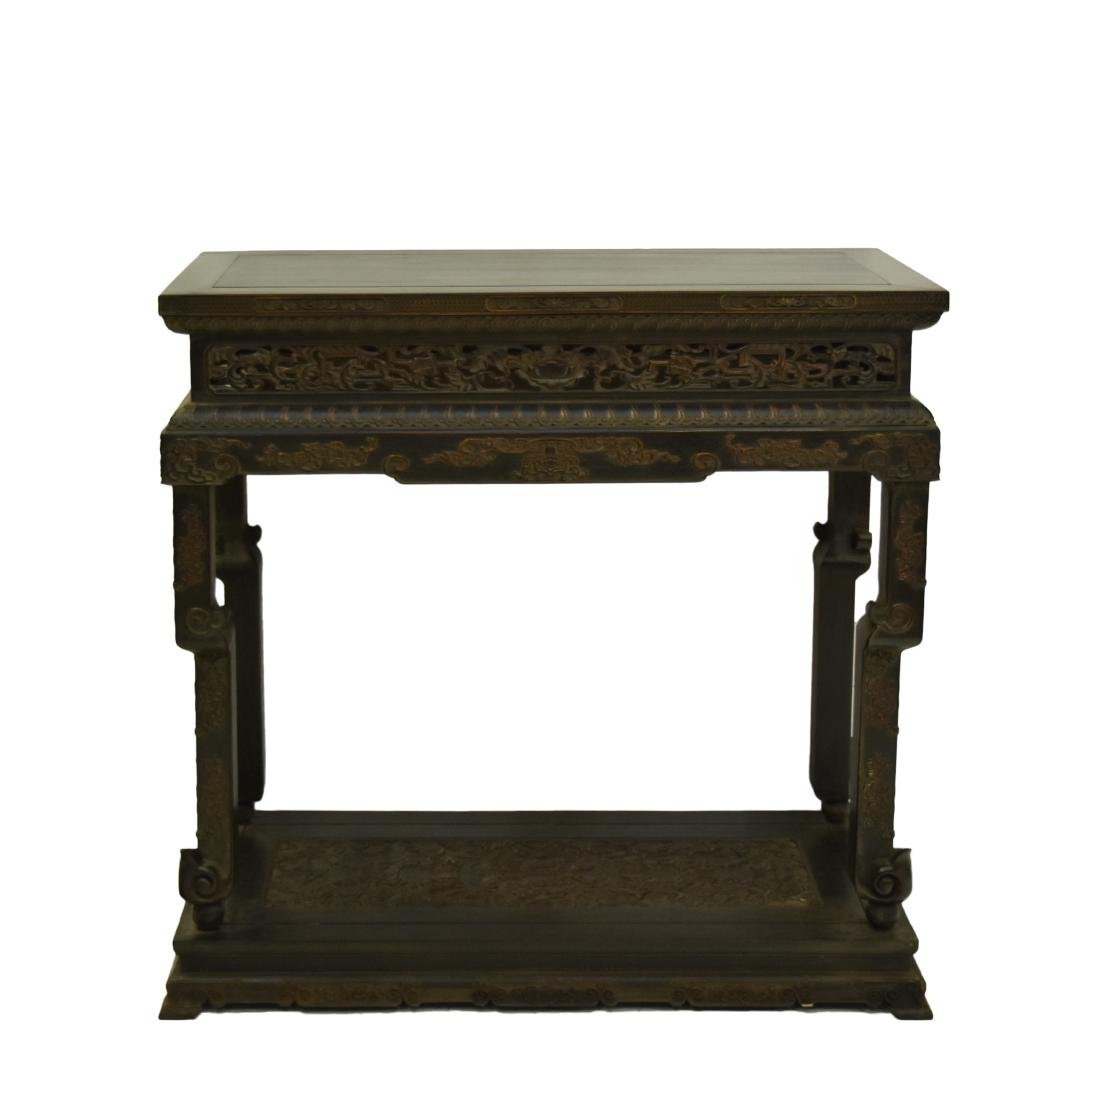 FINELY CARVED CHINESE ZITAN ANTIQUE STAND